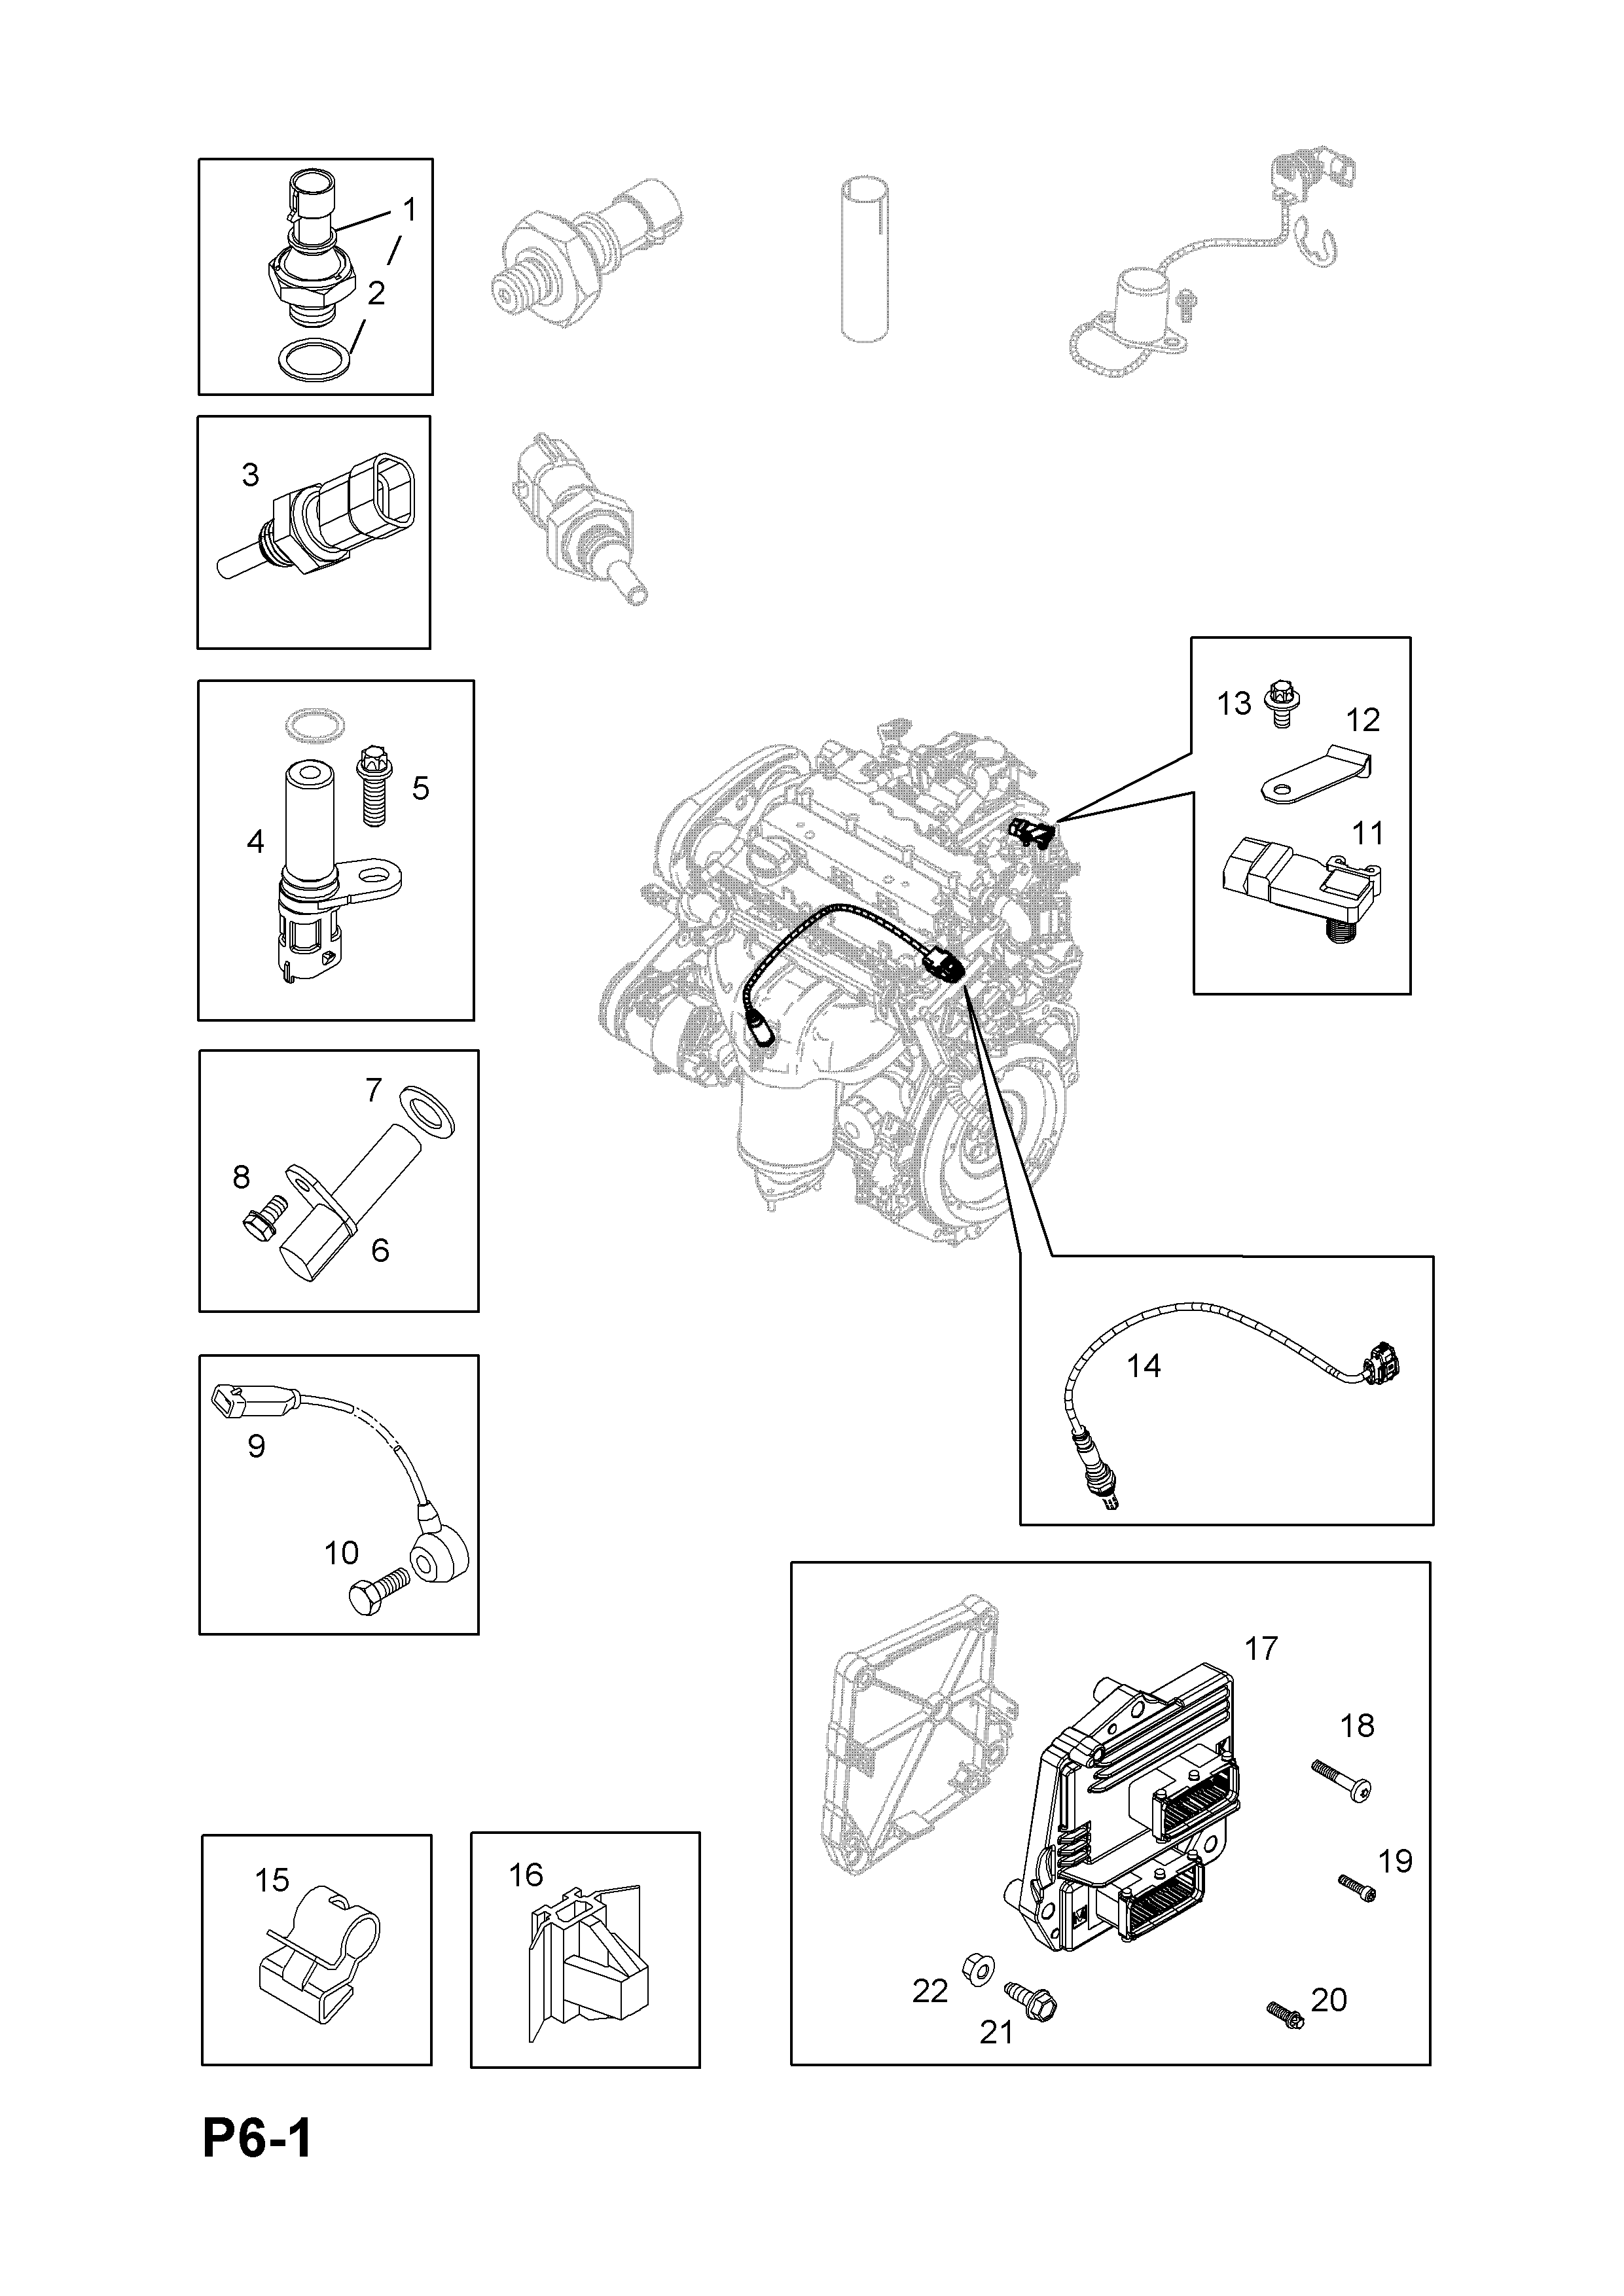 Opel Zafira B 2005 P Electrical 1 Engine And Cooling 103 Coolant List Of Parts